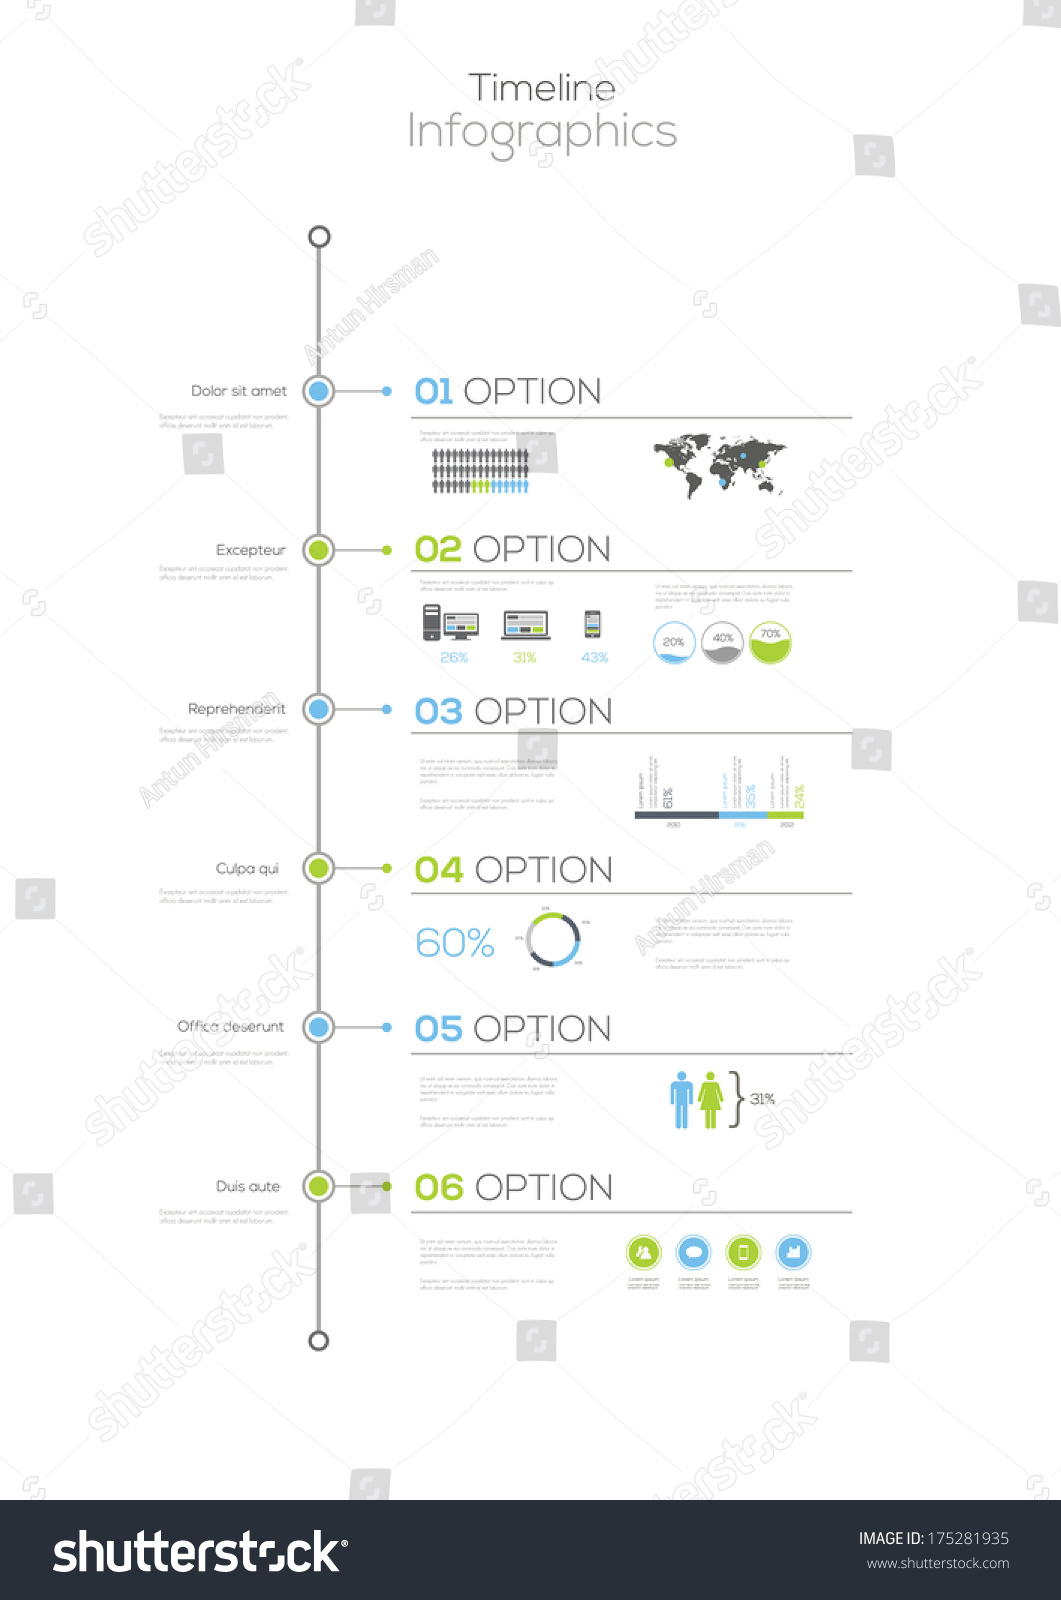 Timeline Infographic Vector Design Template Ez Canvas